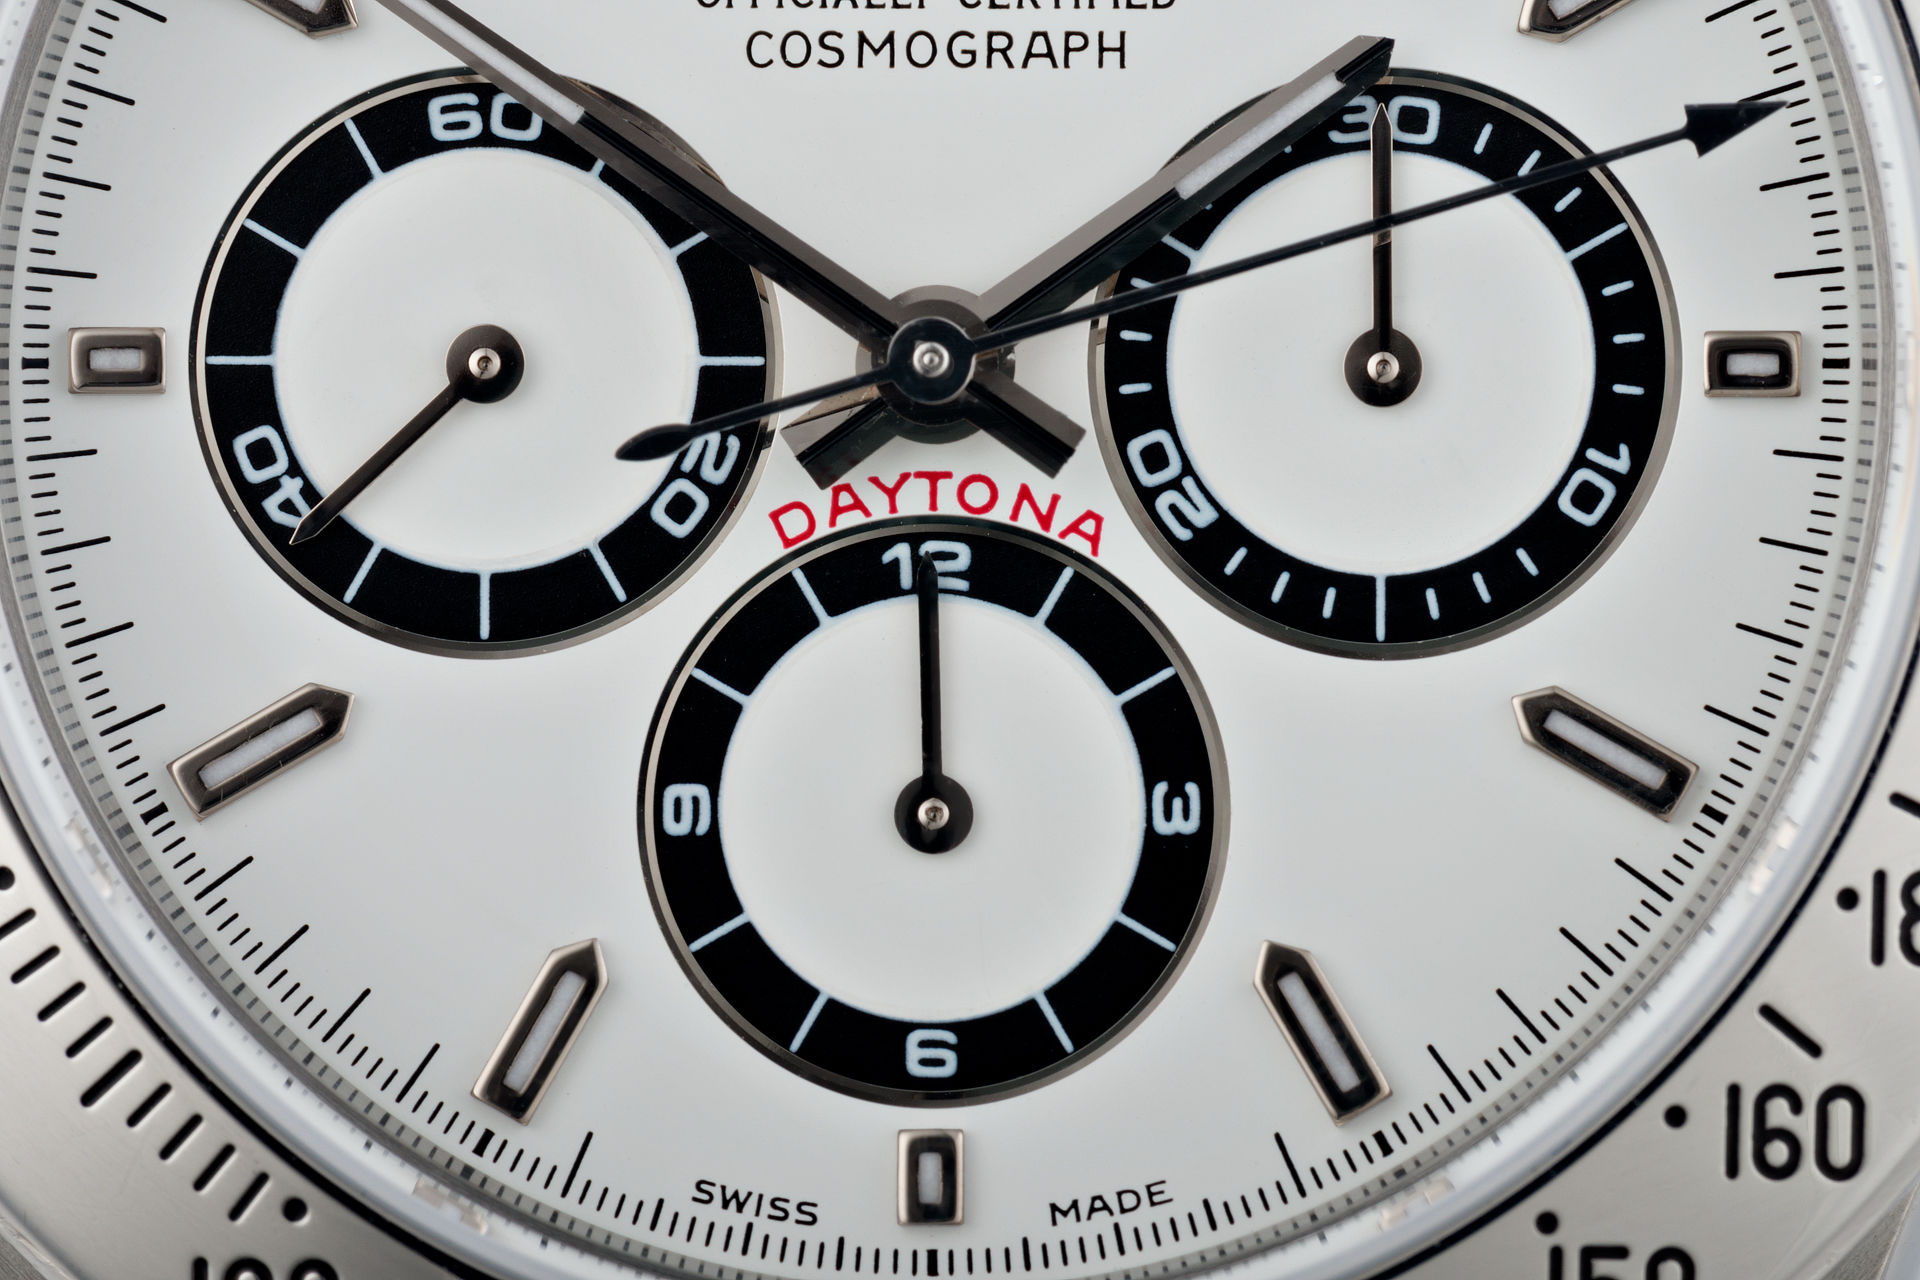 ref 16520 | Zenith Movement 'Luminova' | Rolex Cosmograph Daytona